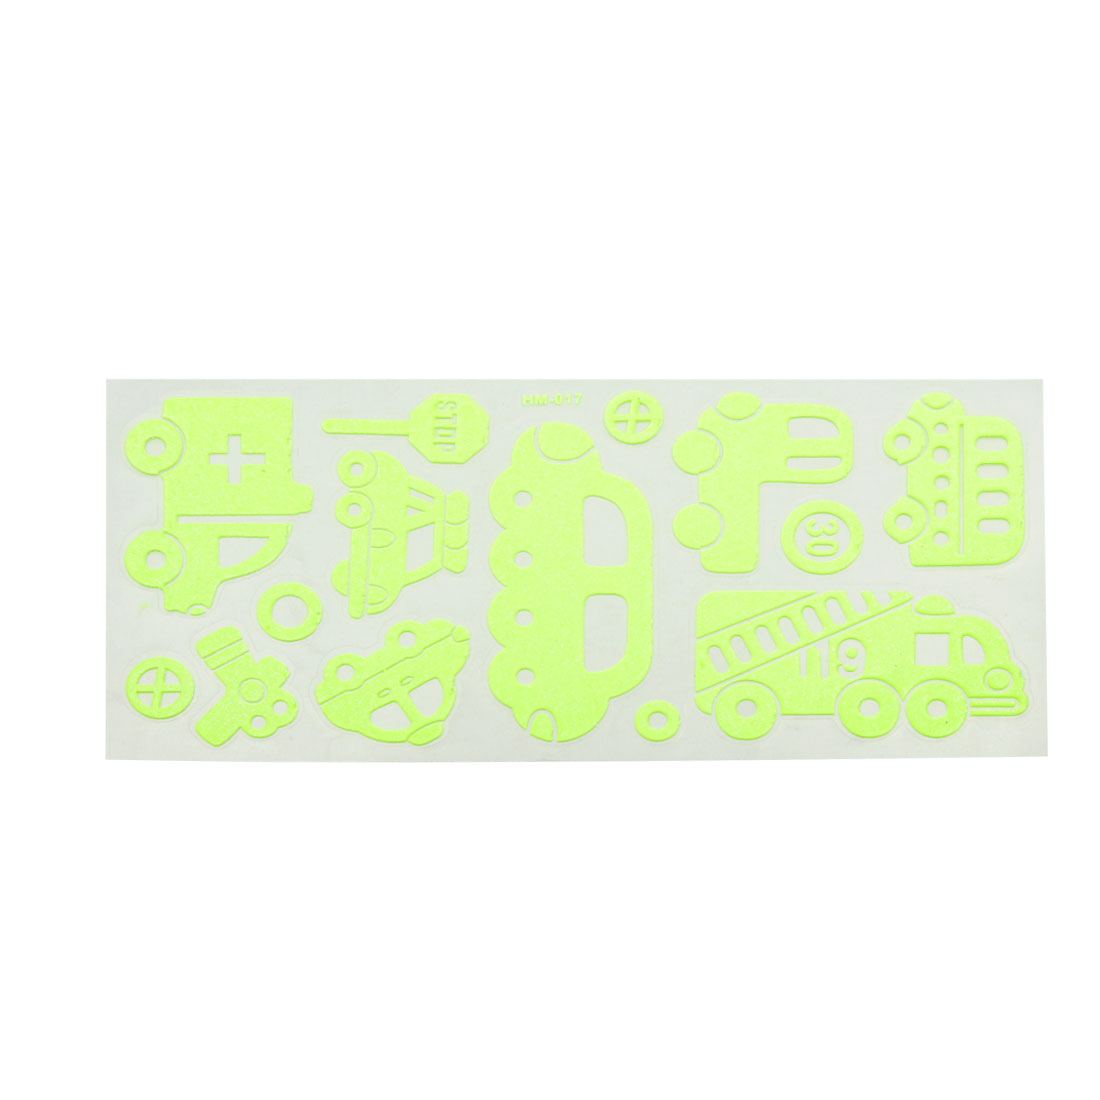 Wall Decor Auto Car Shaped Light Green Luminous Stickers 14 Pcs